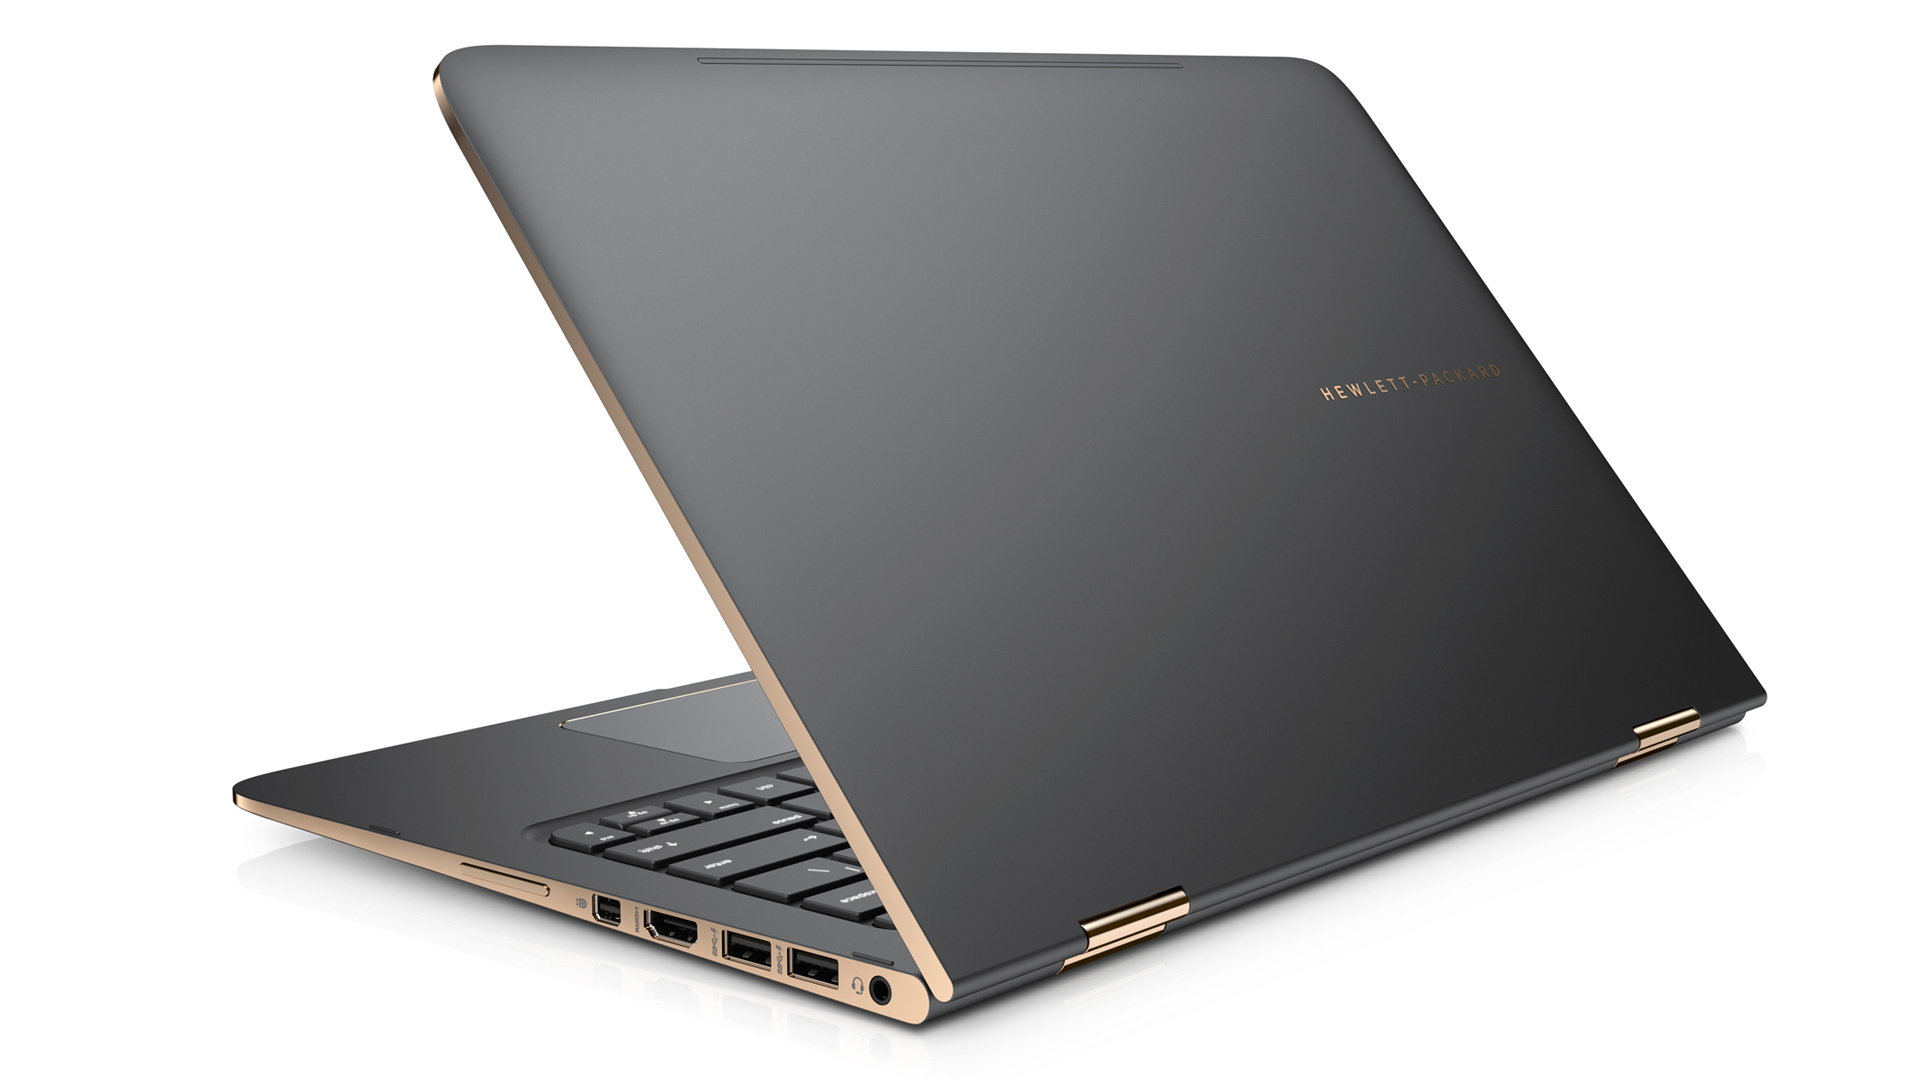 hp spectre x360 13 4203ng convertible notebook mit oled display. Black Bedroom Furniture Sets. Home Design Ideas